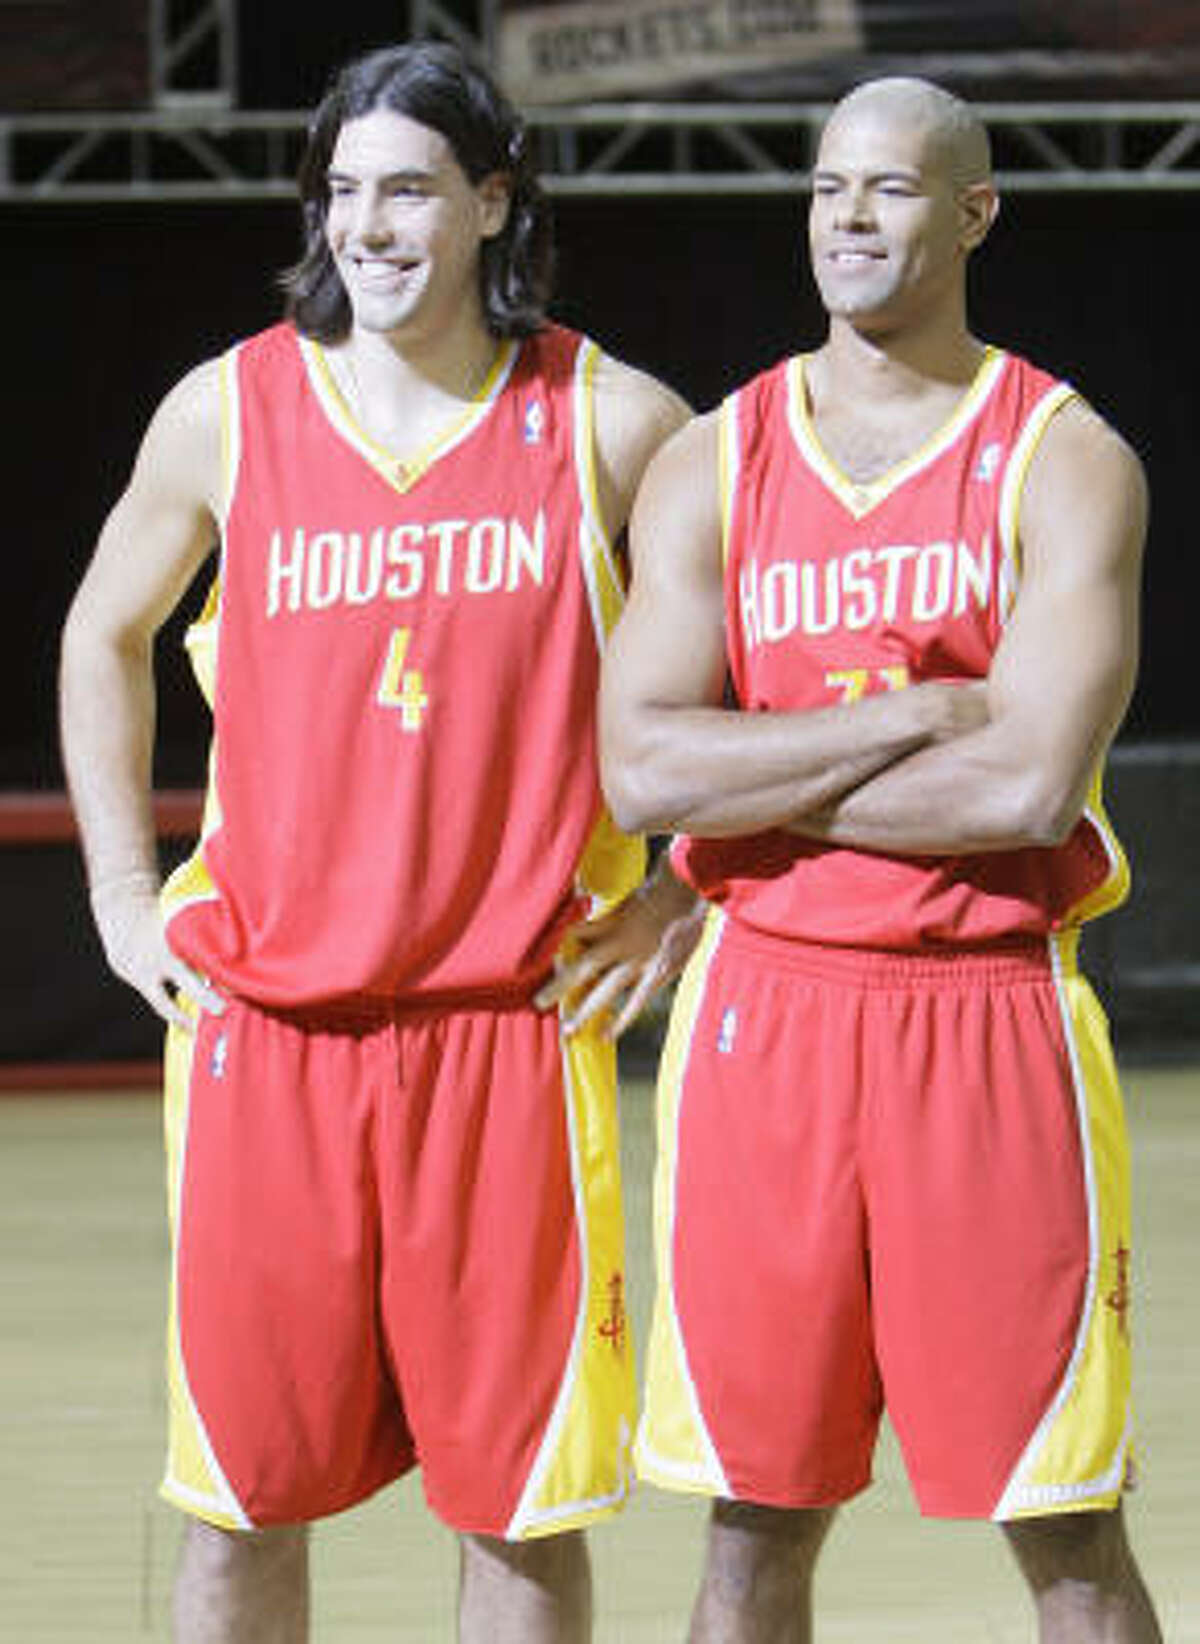 New alternate uniform Houston Rockets players Luis Scola, left, and Shane Battier pose for the media at the unveiling of the team's new alternate uniform.